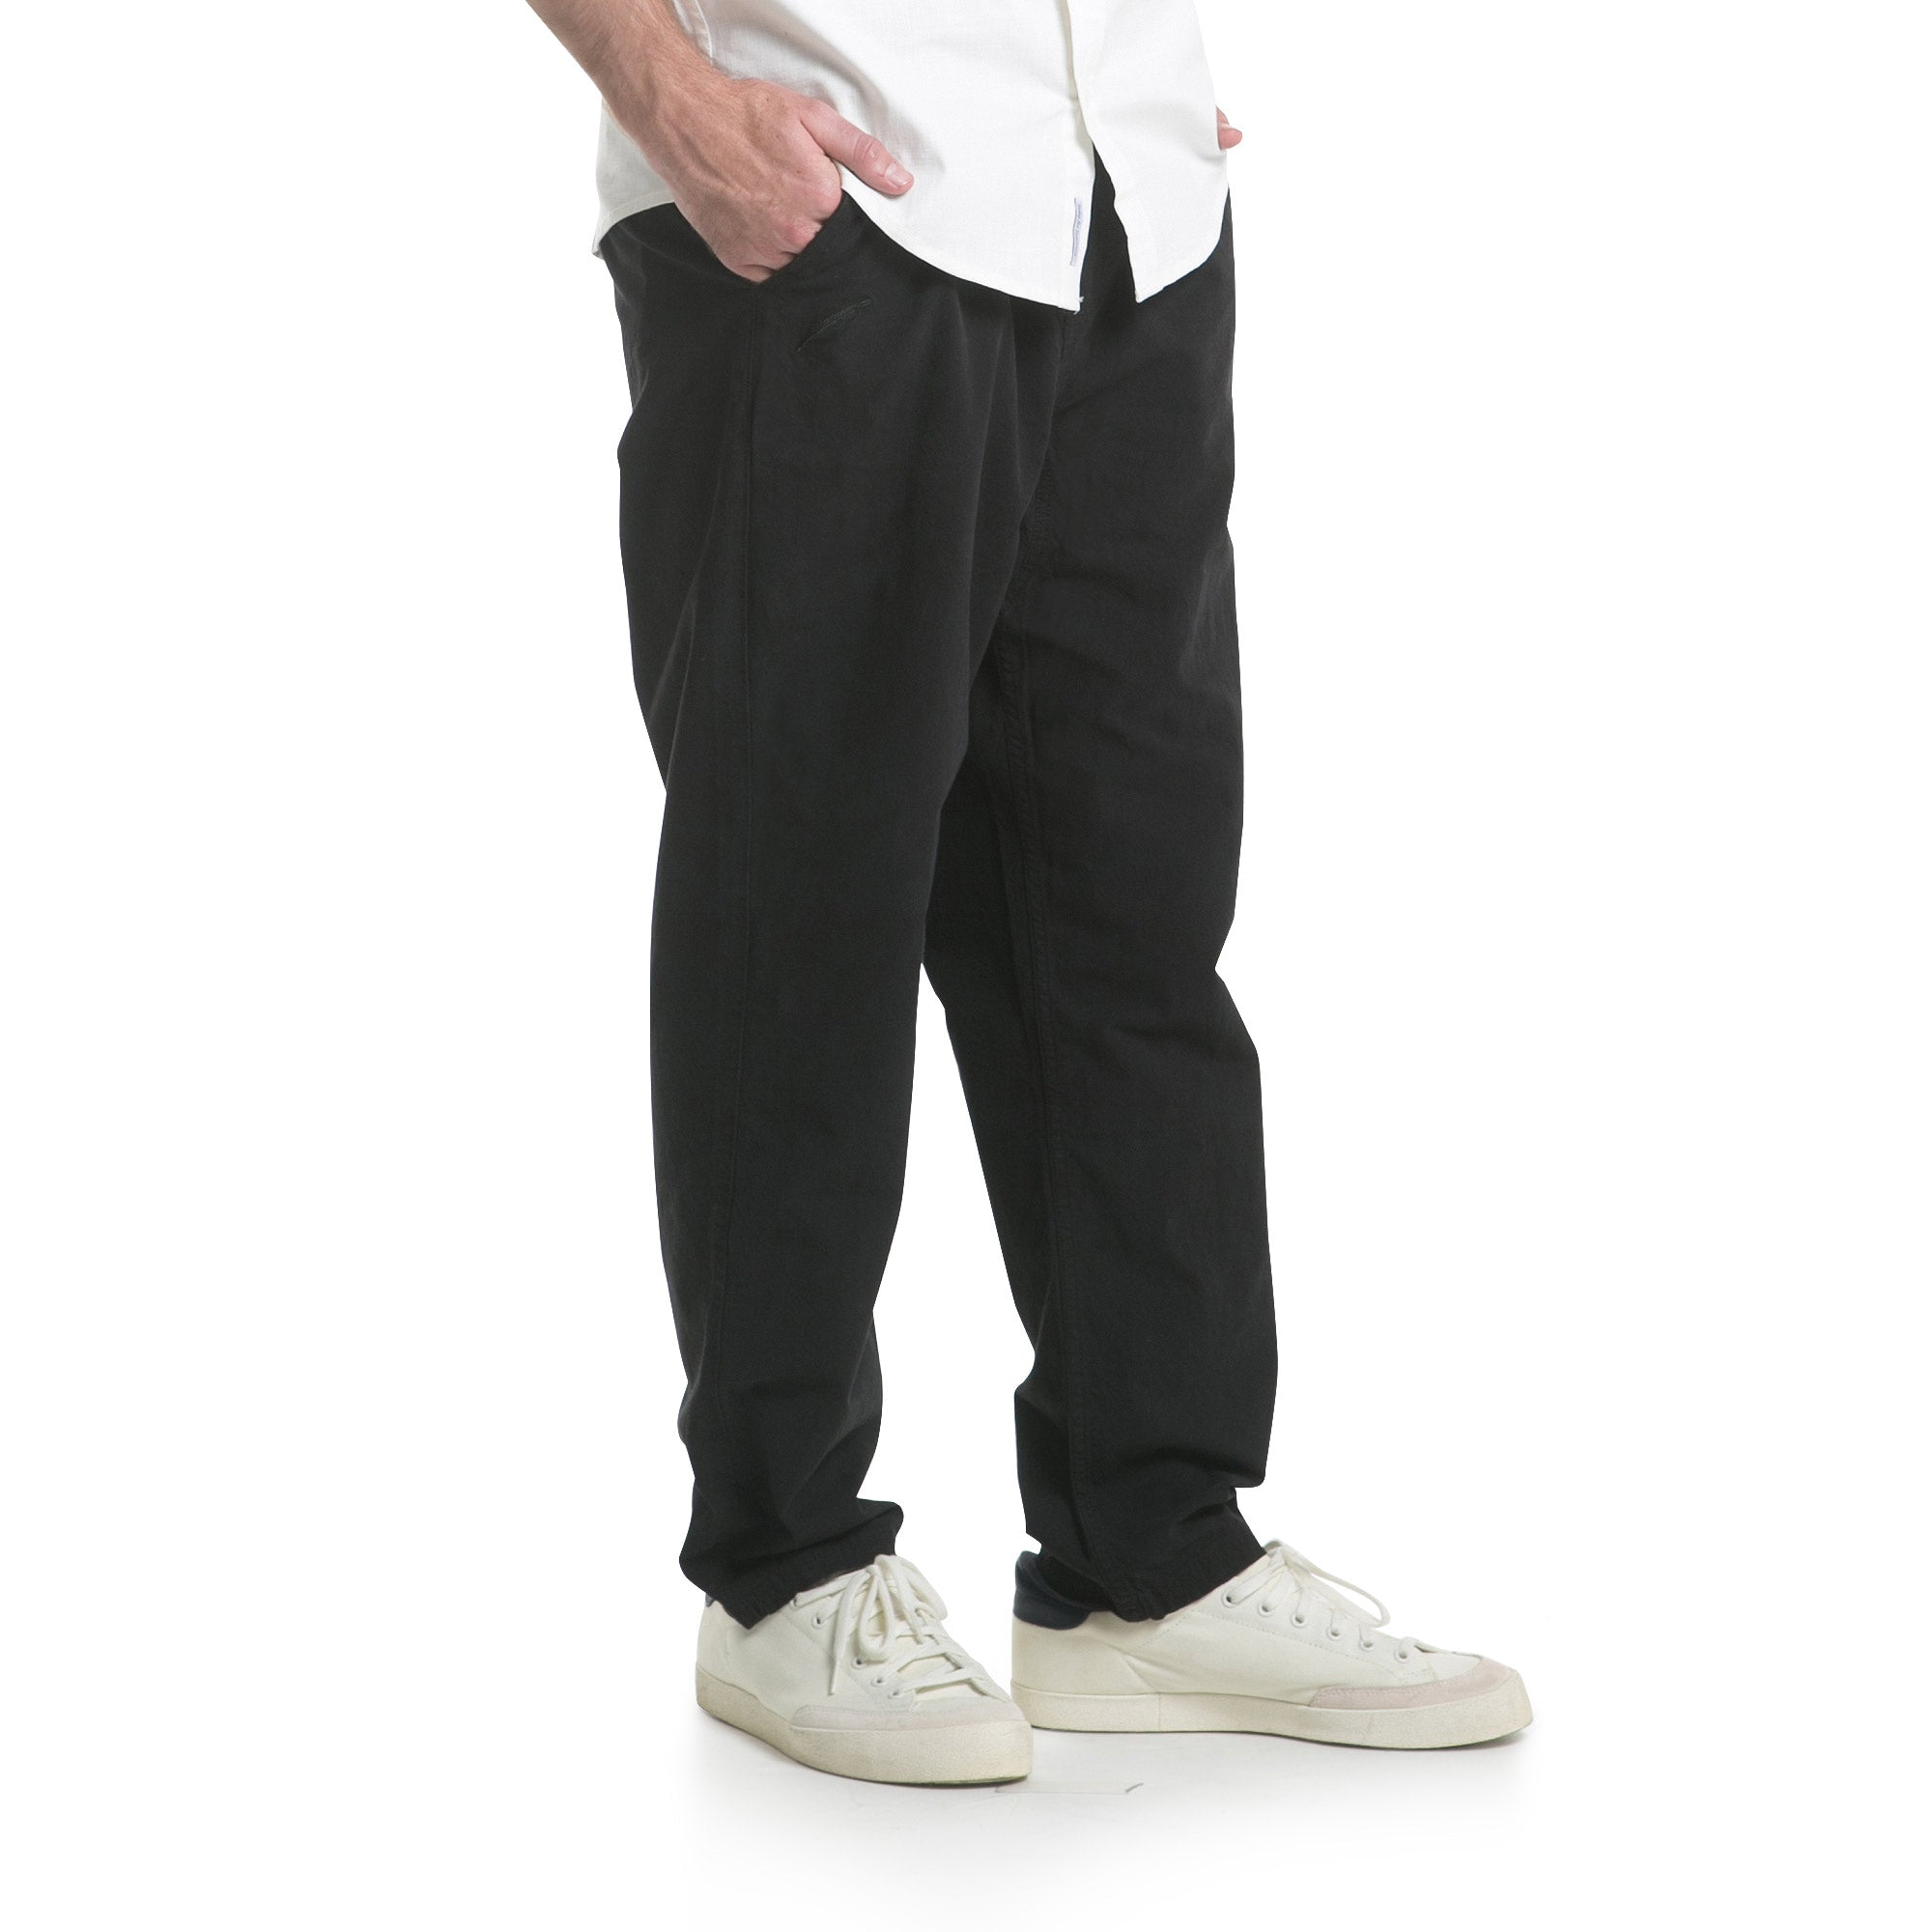 Baggy Chino Pants - Black